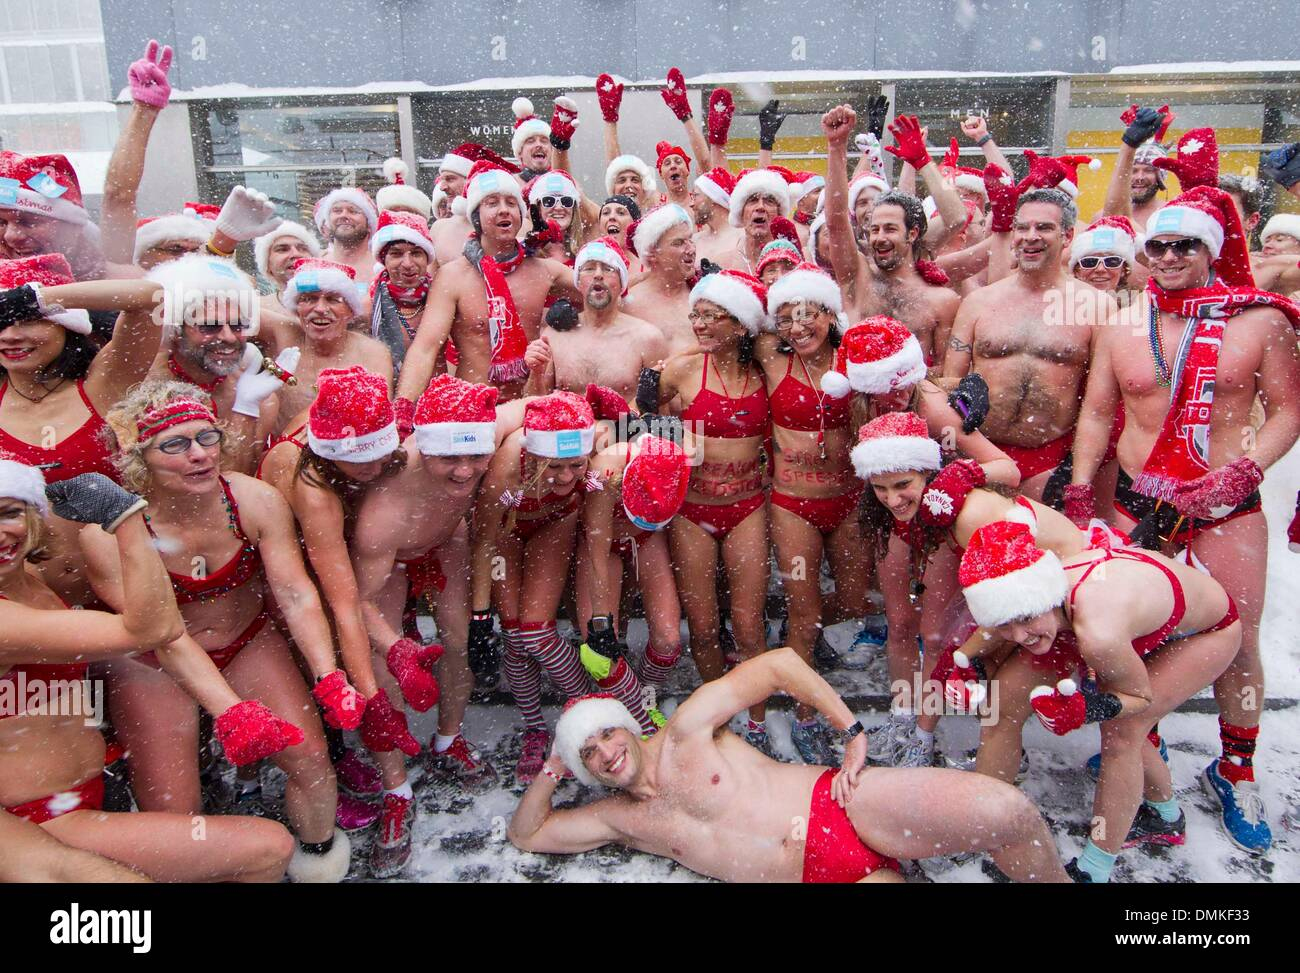 e9ffc5b1a3948 Toronto, Canada. 14th Dec, 2013. Participants in bathing suits pose for  photos after they finished the 2013 Toronto Santa Speedo Run in Toronto,  Canada, ...